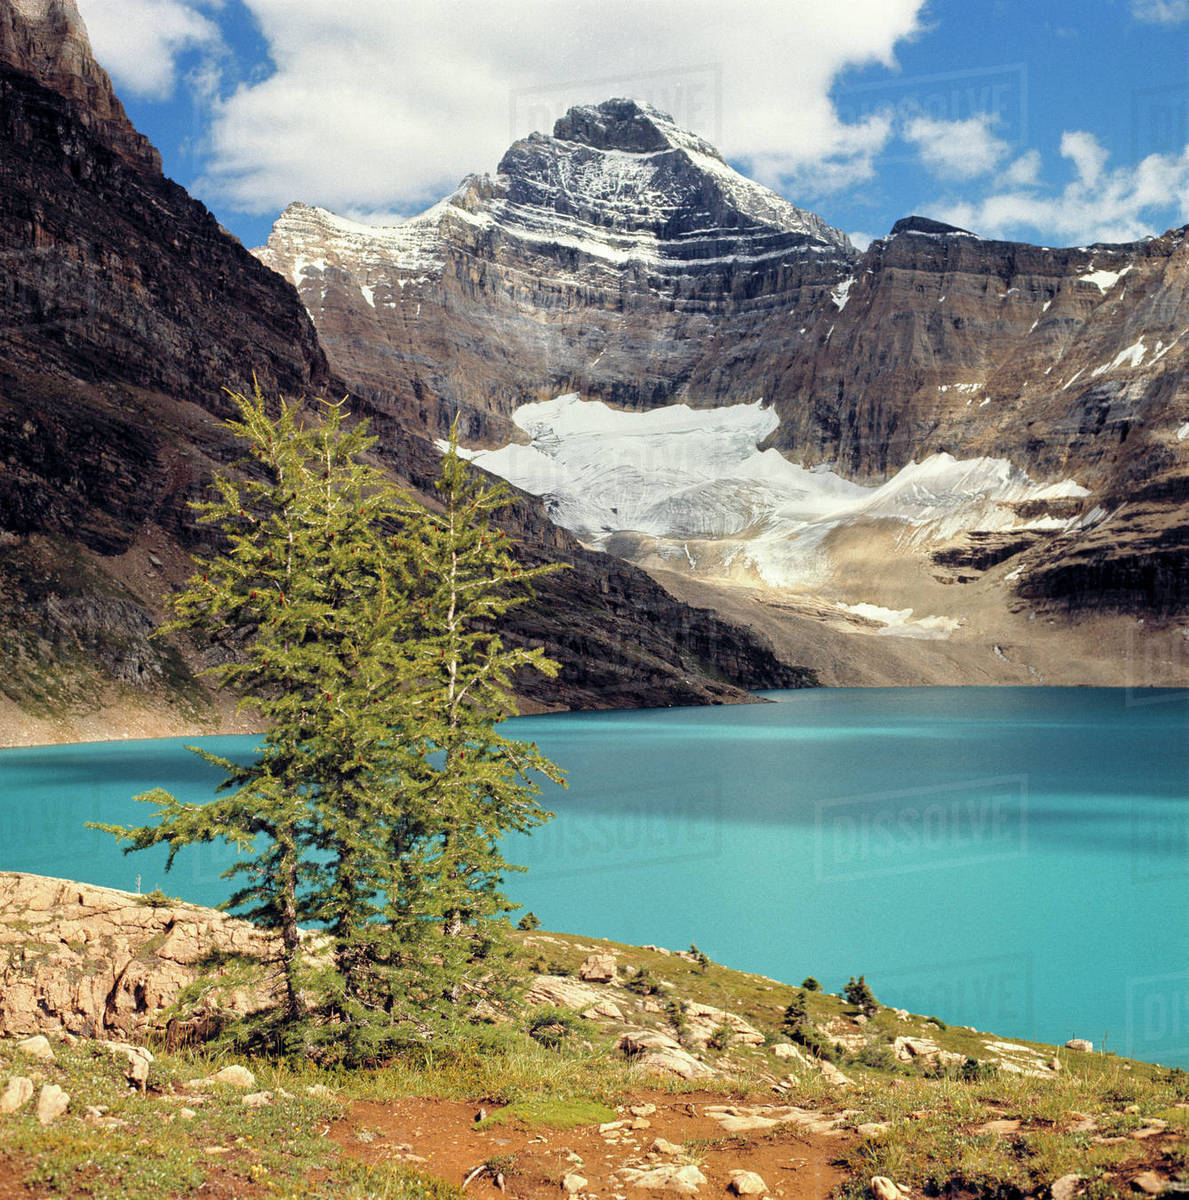 Canada, British Columbia, Yoho National Park. Lake McArthur, the color of turquoise, is surrounded by the Canadian Rockies in Yoho National Park, a World Heritage Site, British Columbia, Canada. Royalty-free stock photo